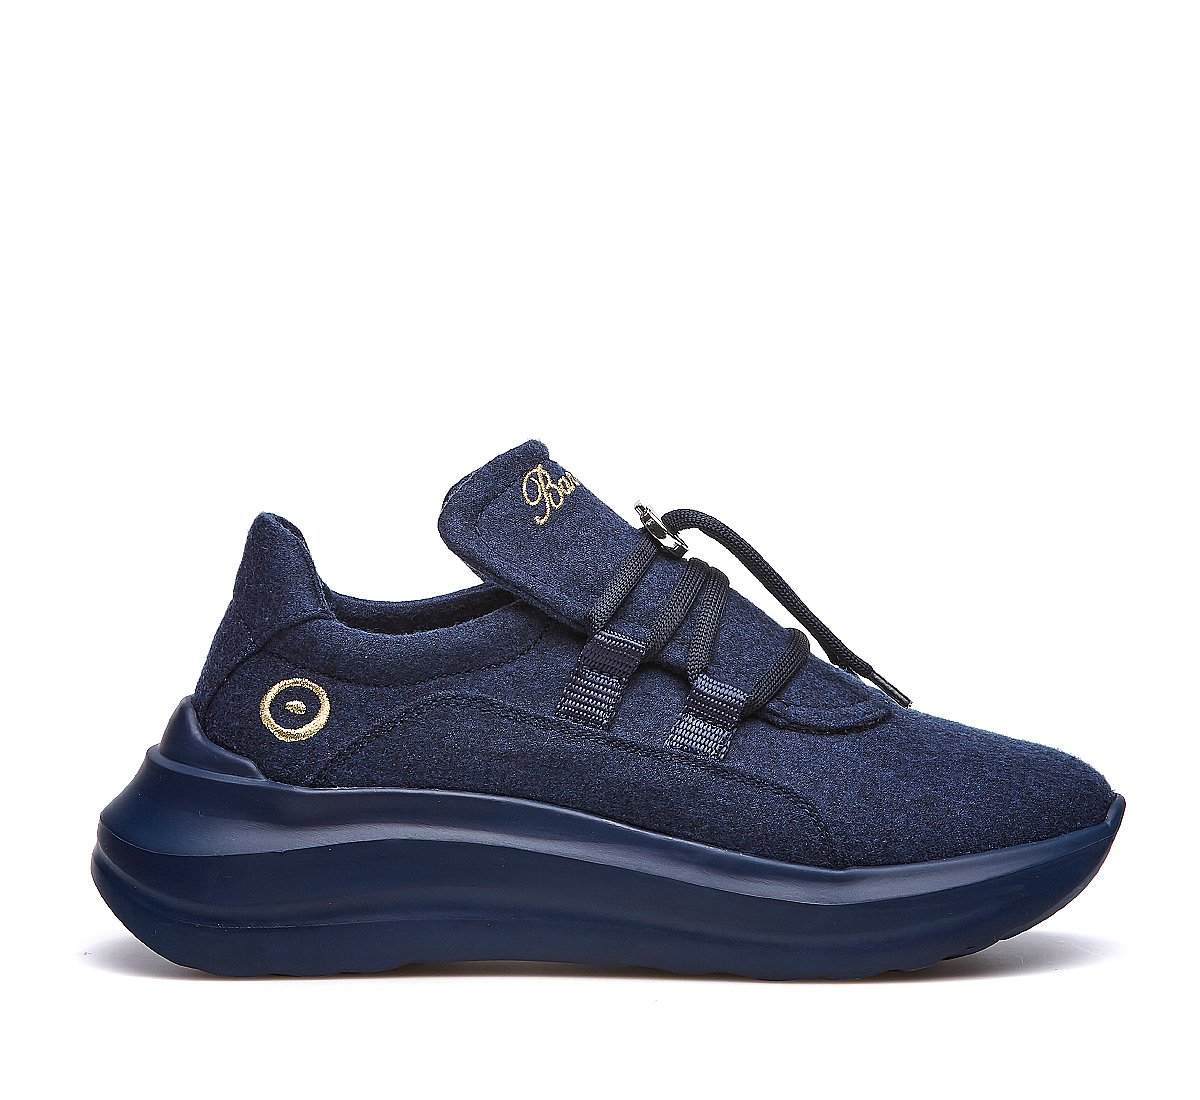 Barracuda breathable/dry sneakers by Reda Active Merino Wool